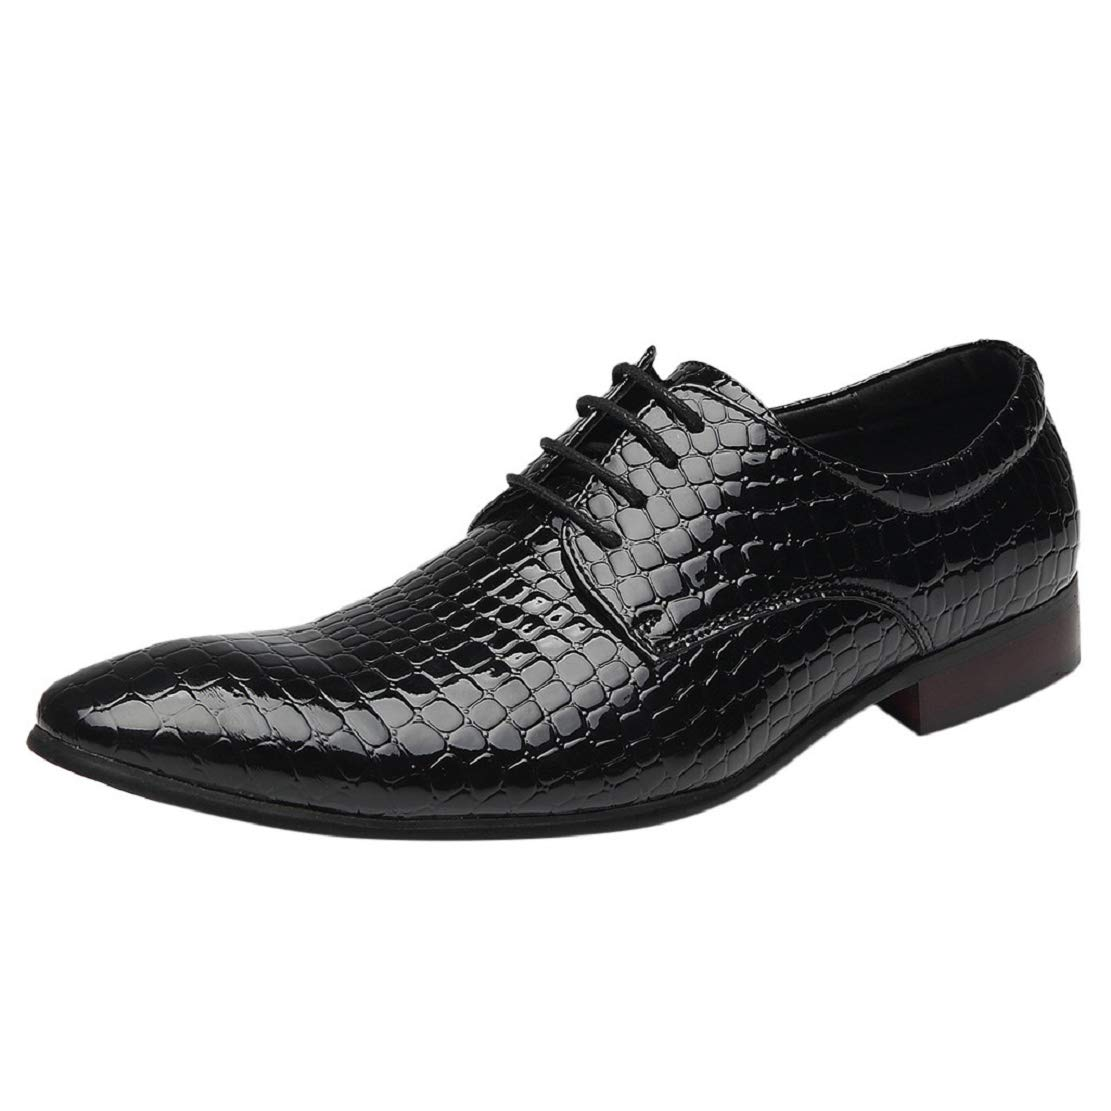 Men's Snake Print Dress Shoes Pointed Toe Lace up Wingtip Formal Comfortable Fashion Shoes by Lowprofile Black